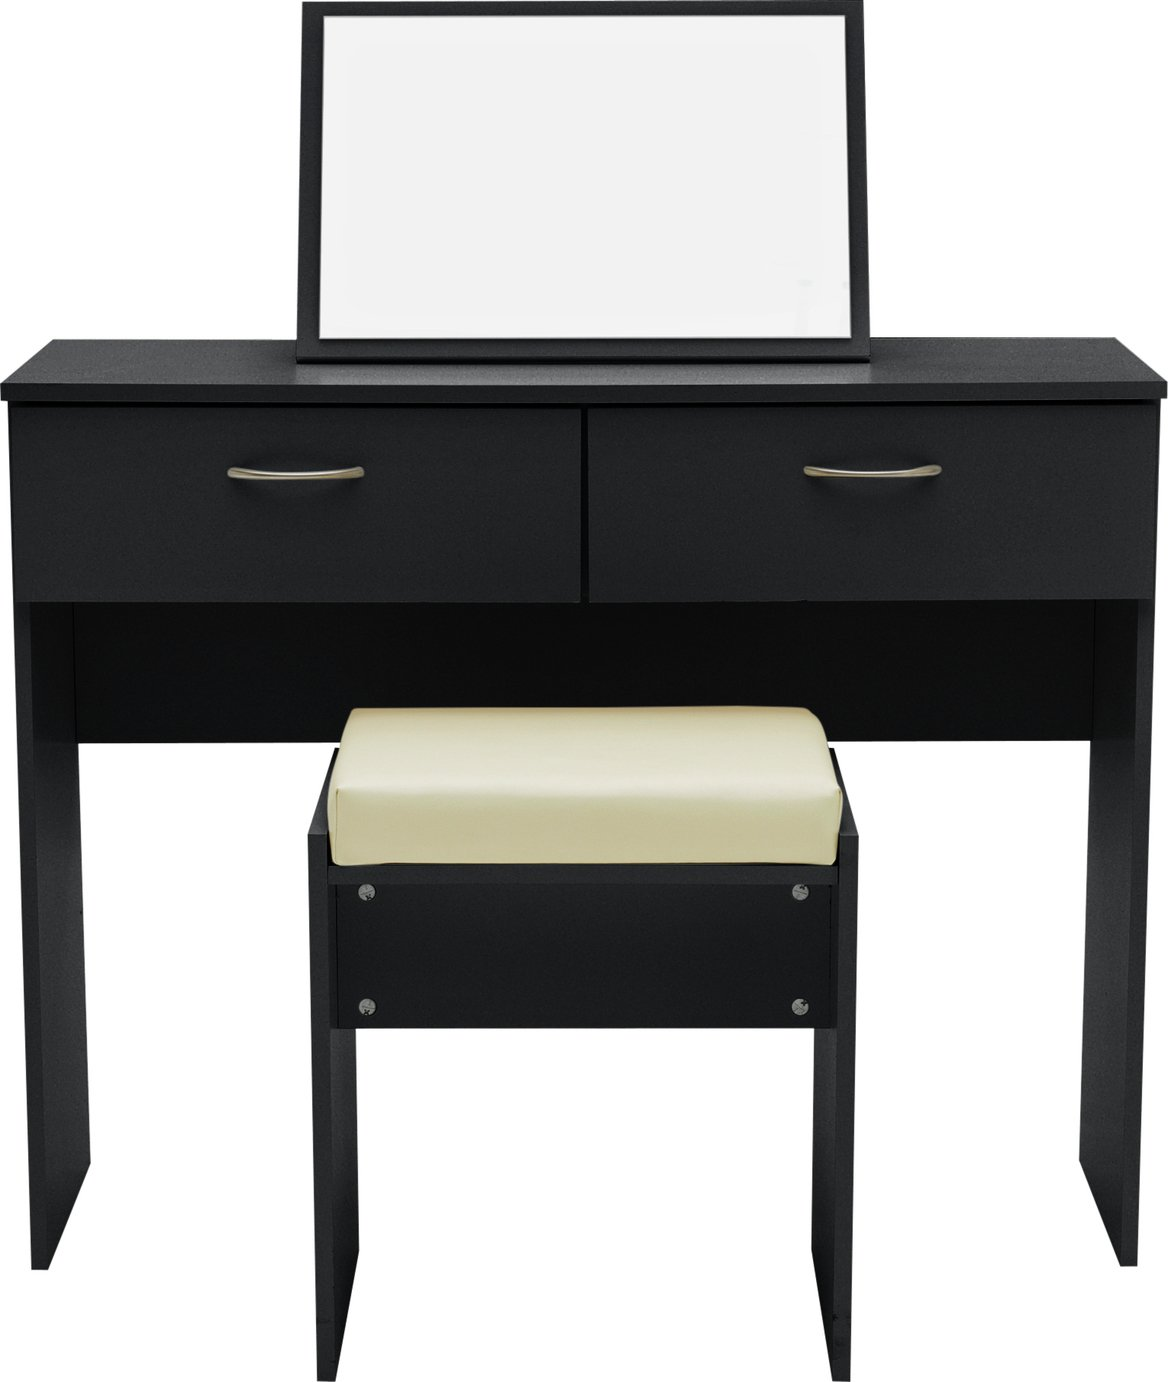 Image of Collection Cheval Dressing Table, Stool & Mirror - Black